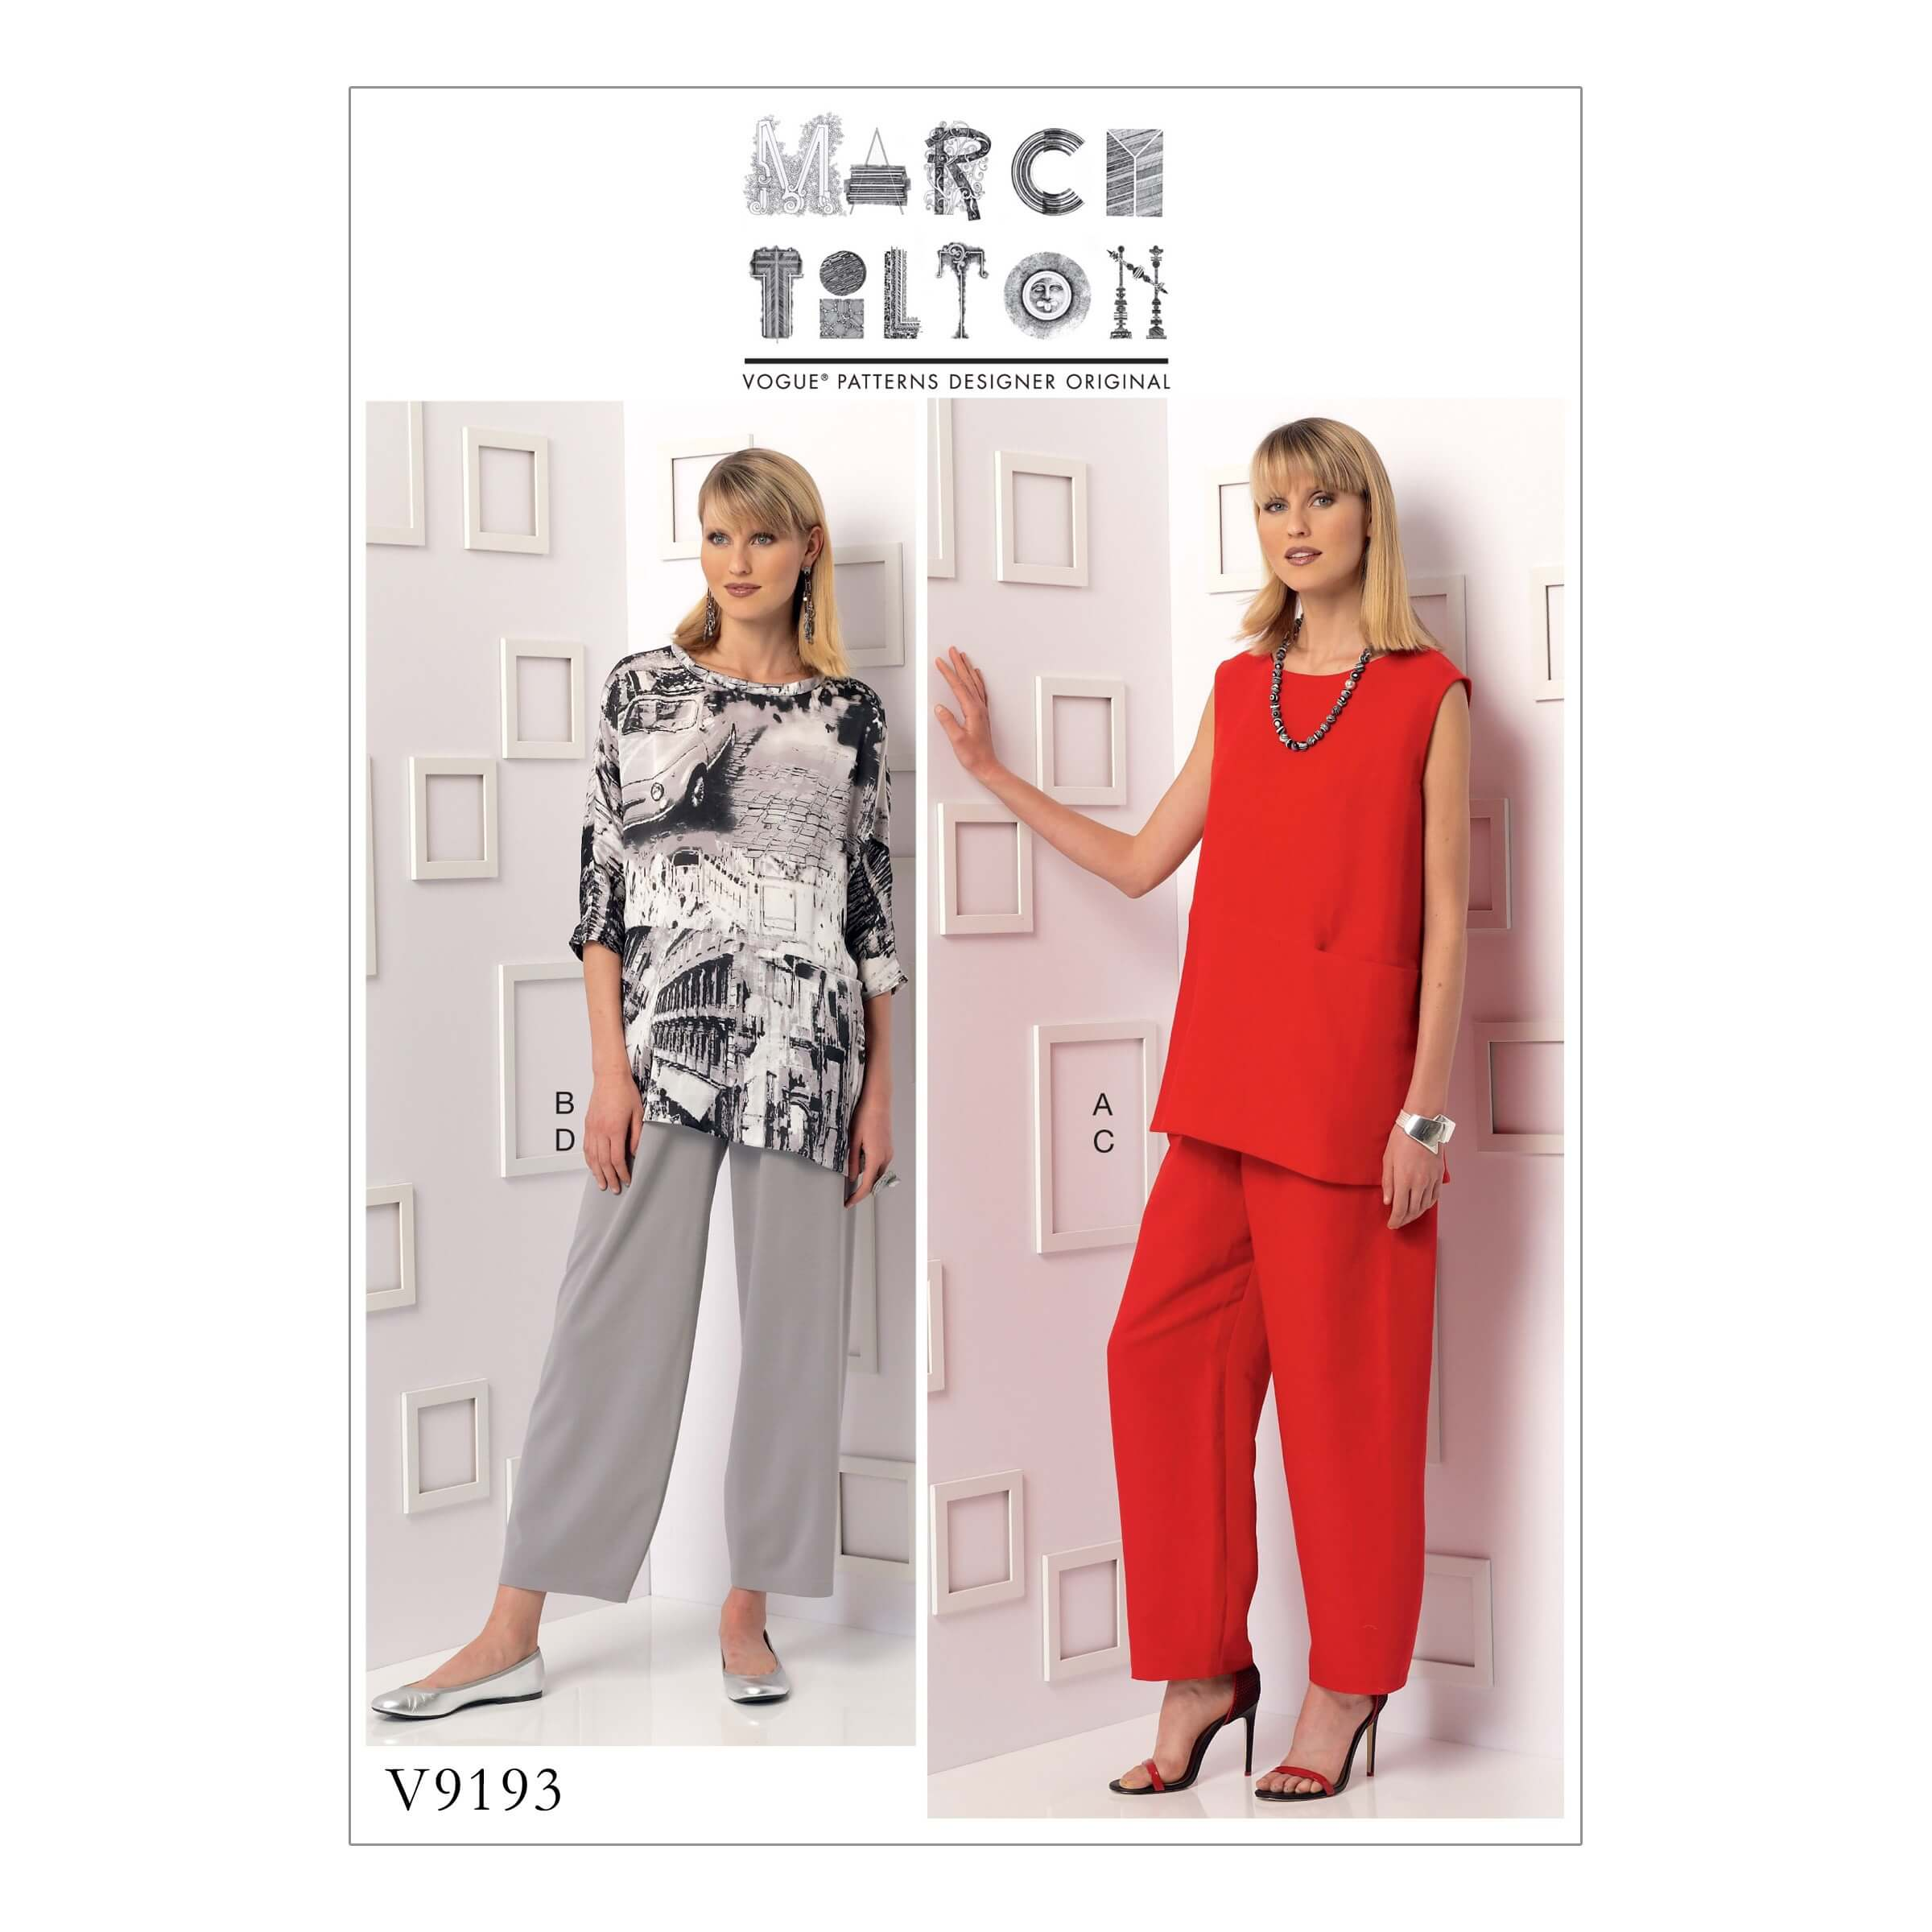 Vogue Sewing Pattern V9193 Women's Sleeveless Or Sleeve Tunics And Pants With Yoke